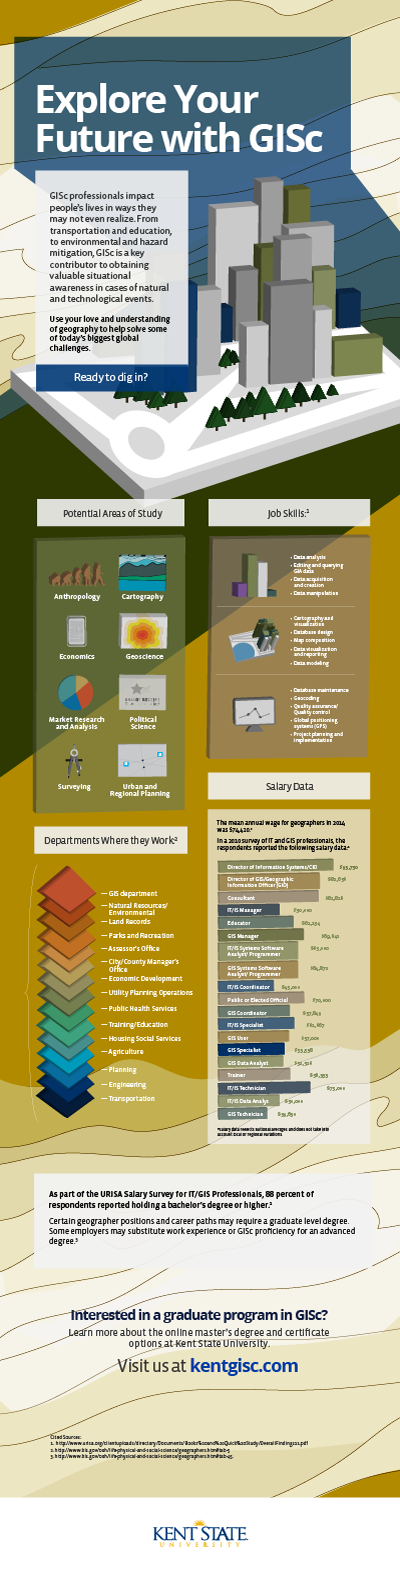 Explore Your Future with GISc infographic thumbnail